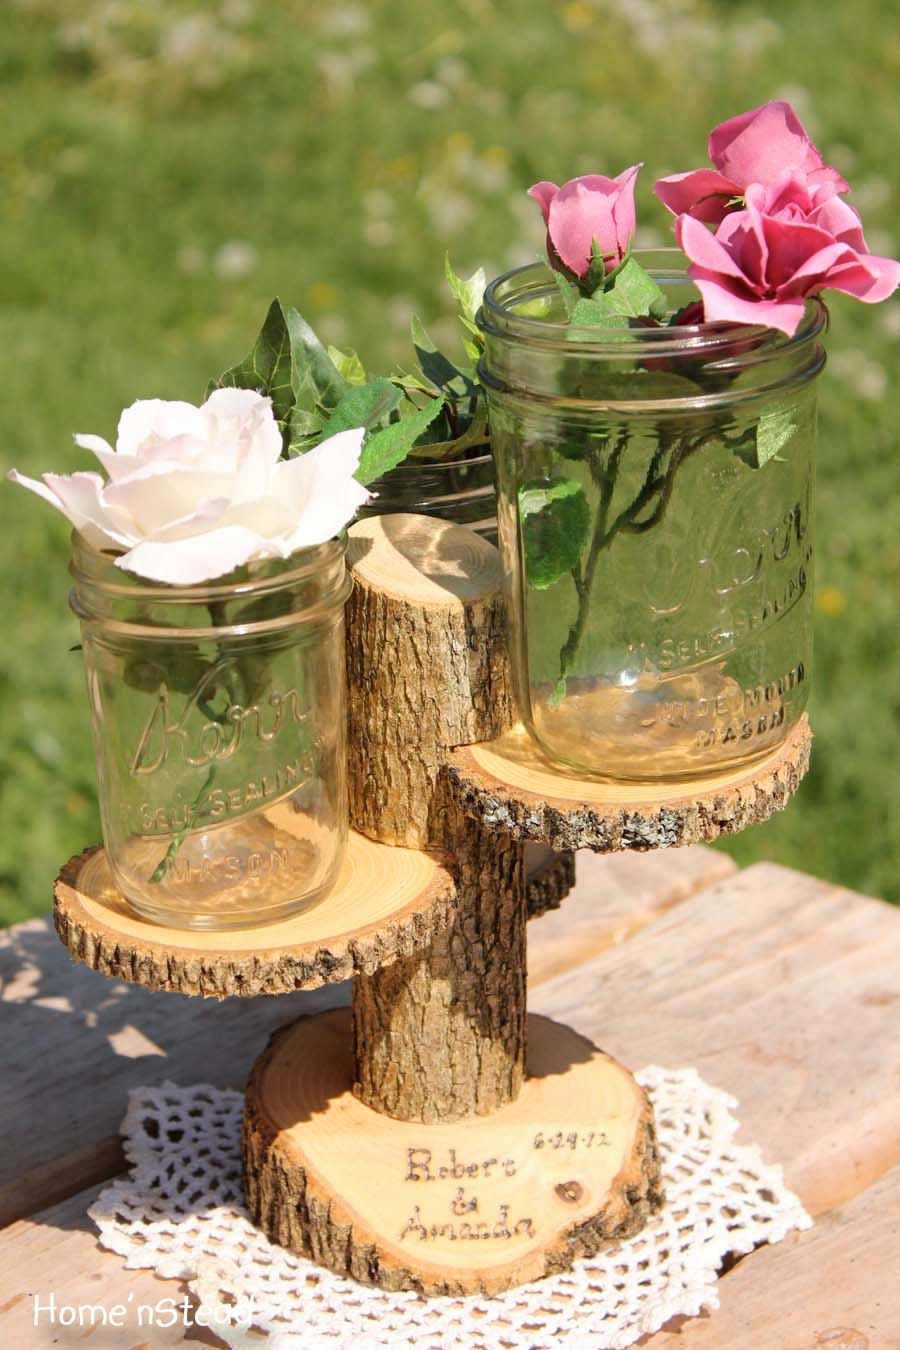 Personalized Rustic 3Tiered Stand With Engraved